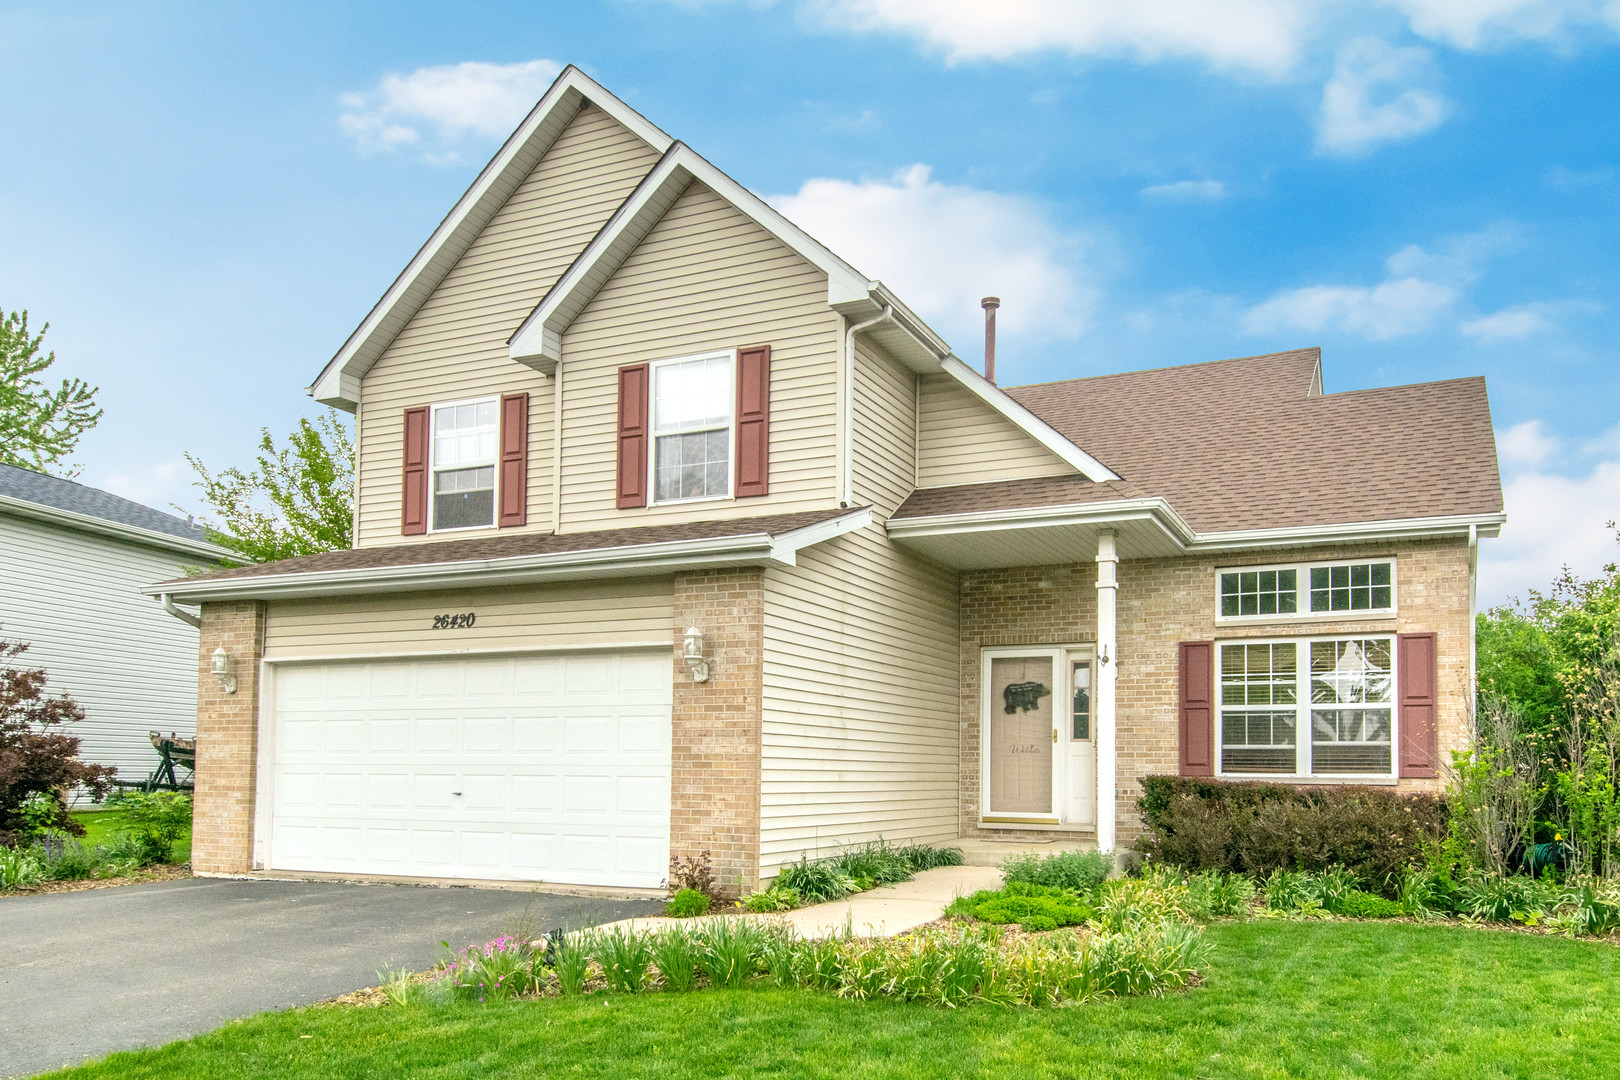 Property for sale at 26420 West Stonebriar Way, Channahon,  IL 60410